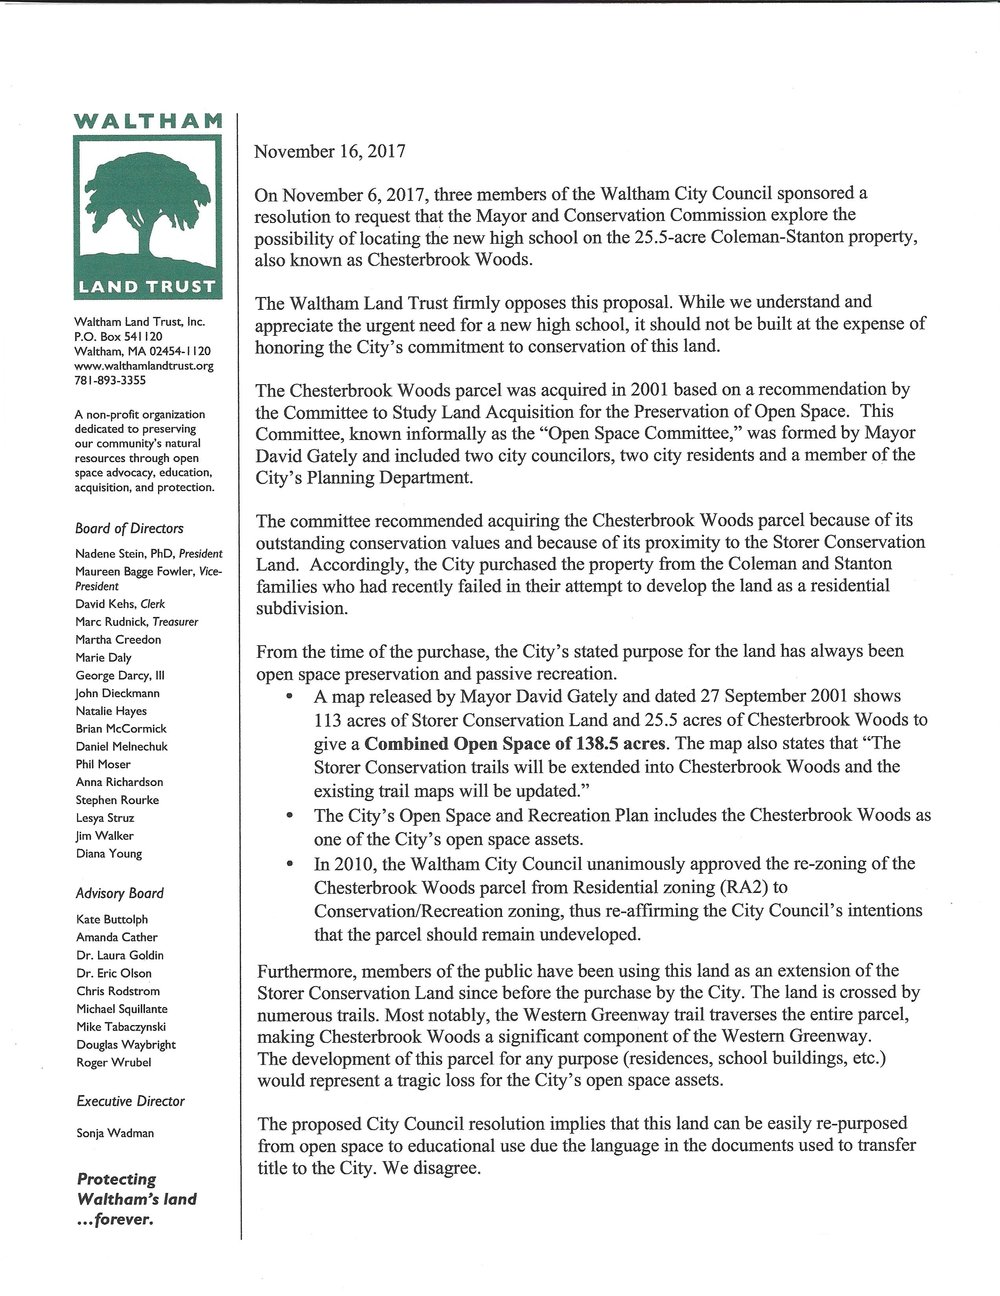 WLT letter on Chesterbrook Woods.jpg